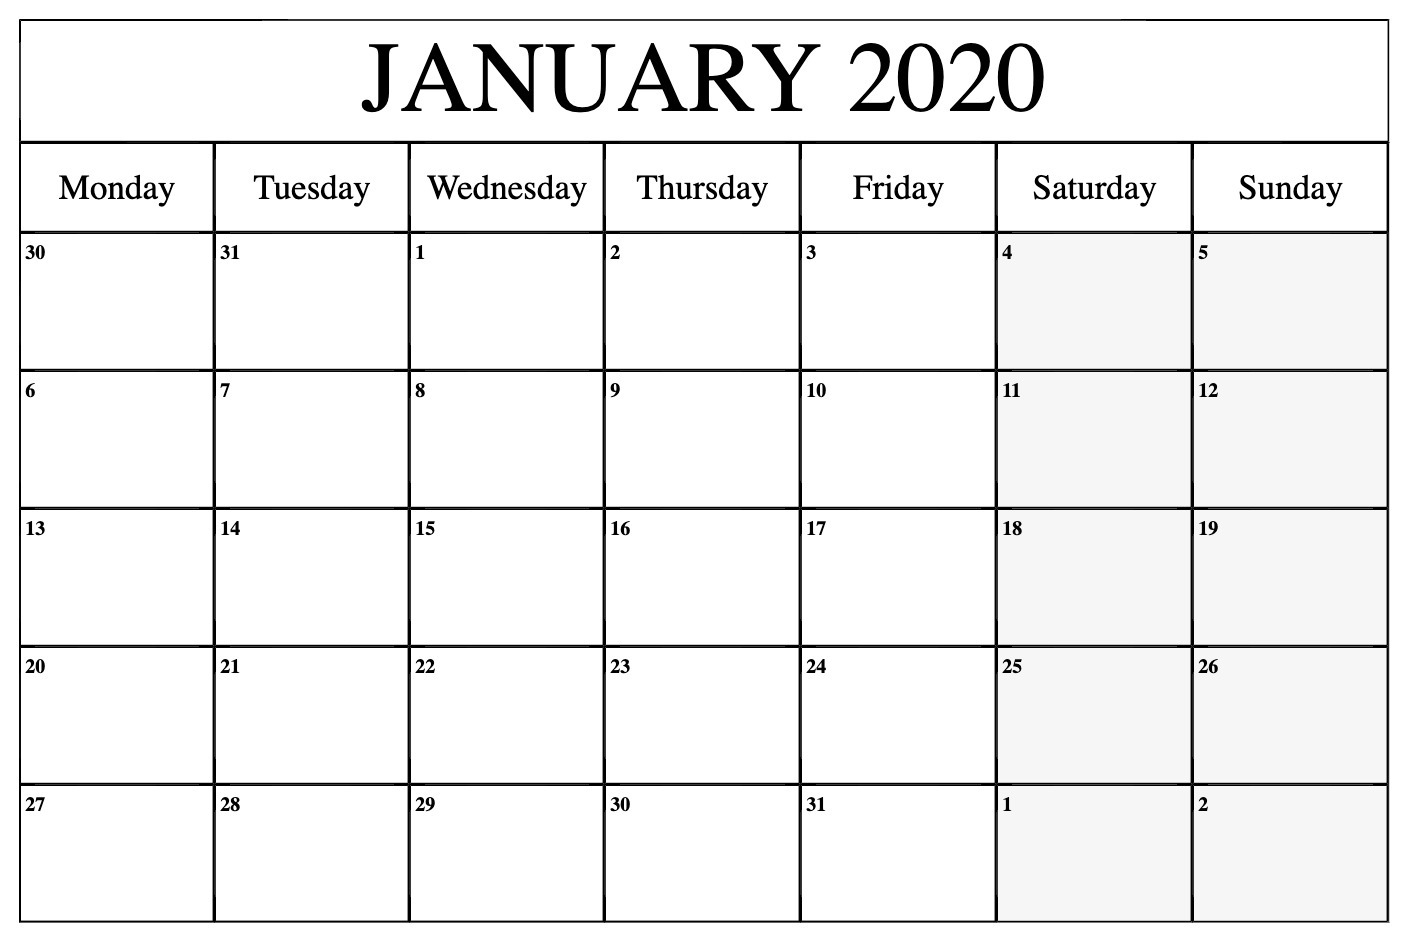 Monthly January 2020 Calendar Printable Pdf Word Excel intended for January 2020 Calendar Blank